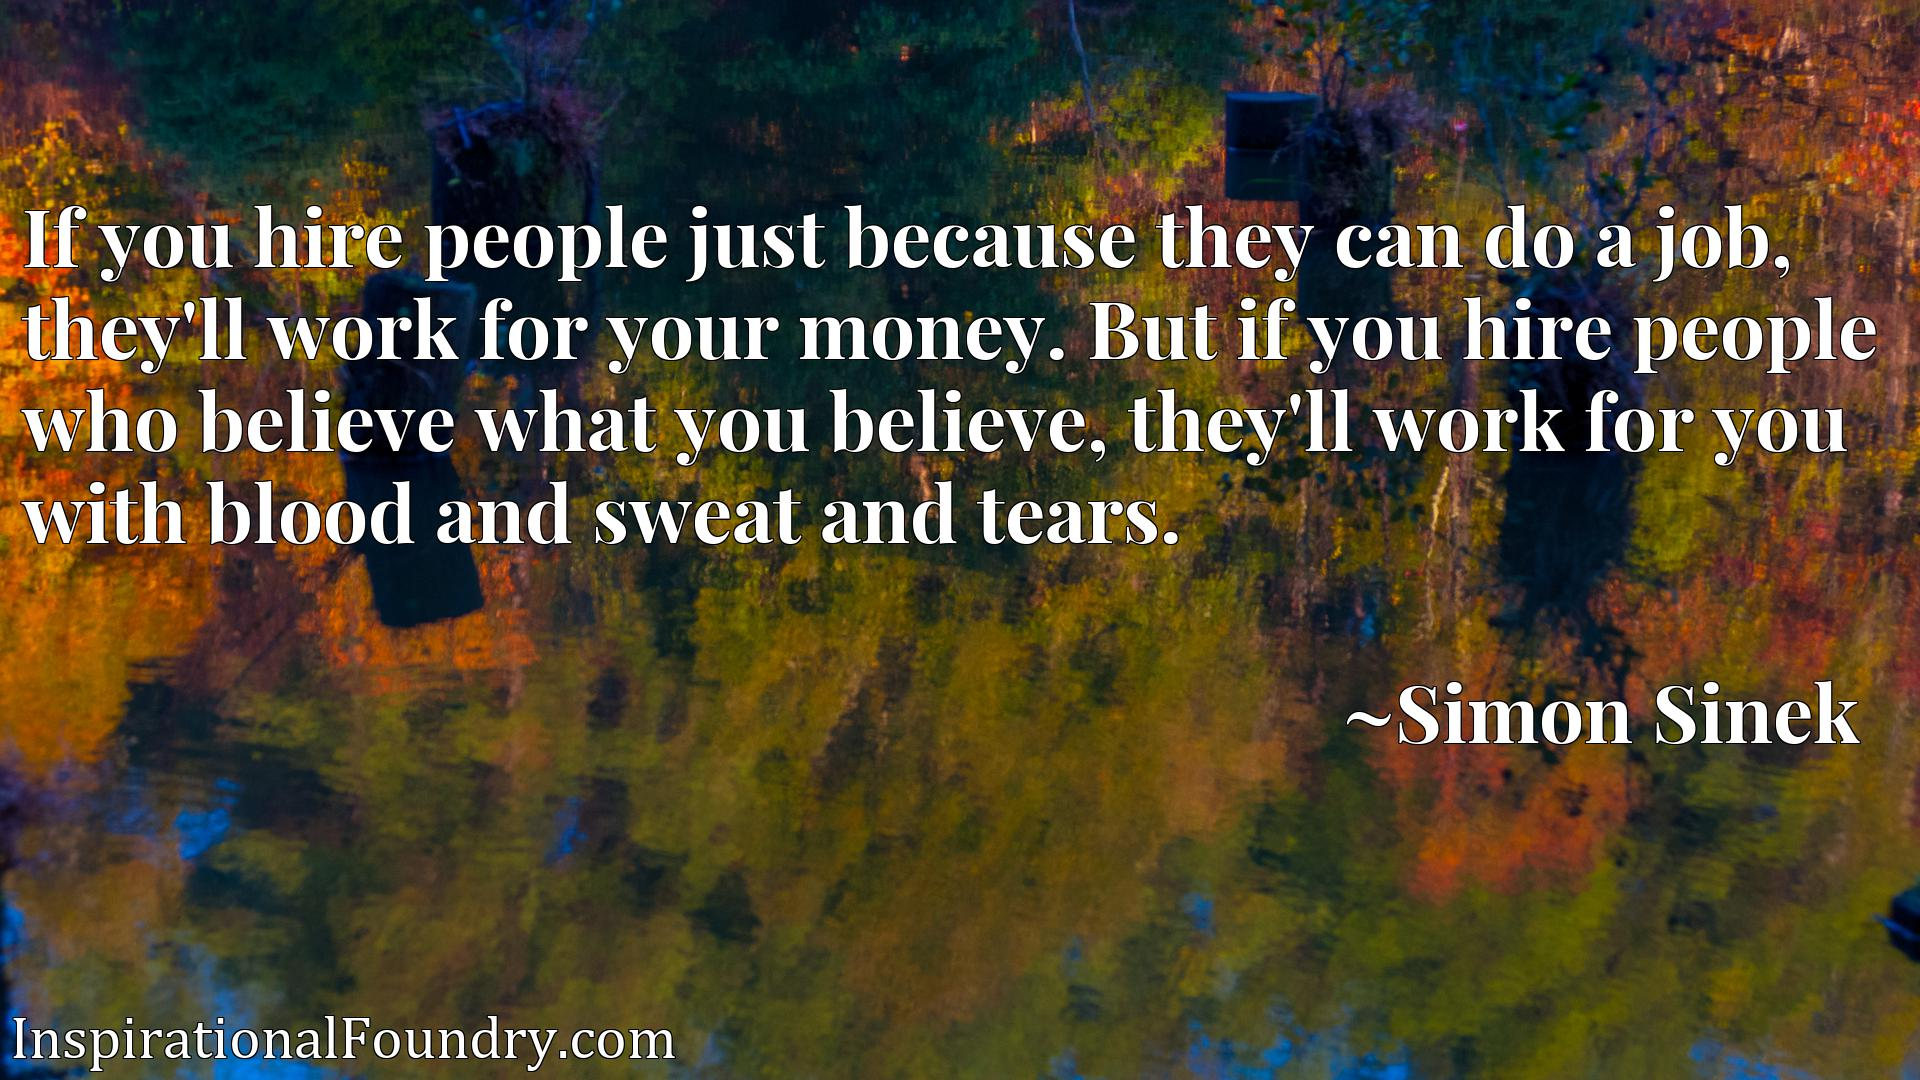 Quote Picture :If you hire people just because they can do a job, they'll work for your money. But if you hire people who believe what you believe, they'll work for you with blood and sweat and tears.